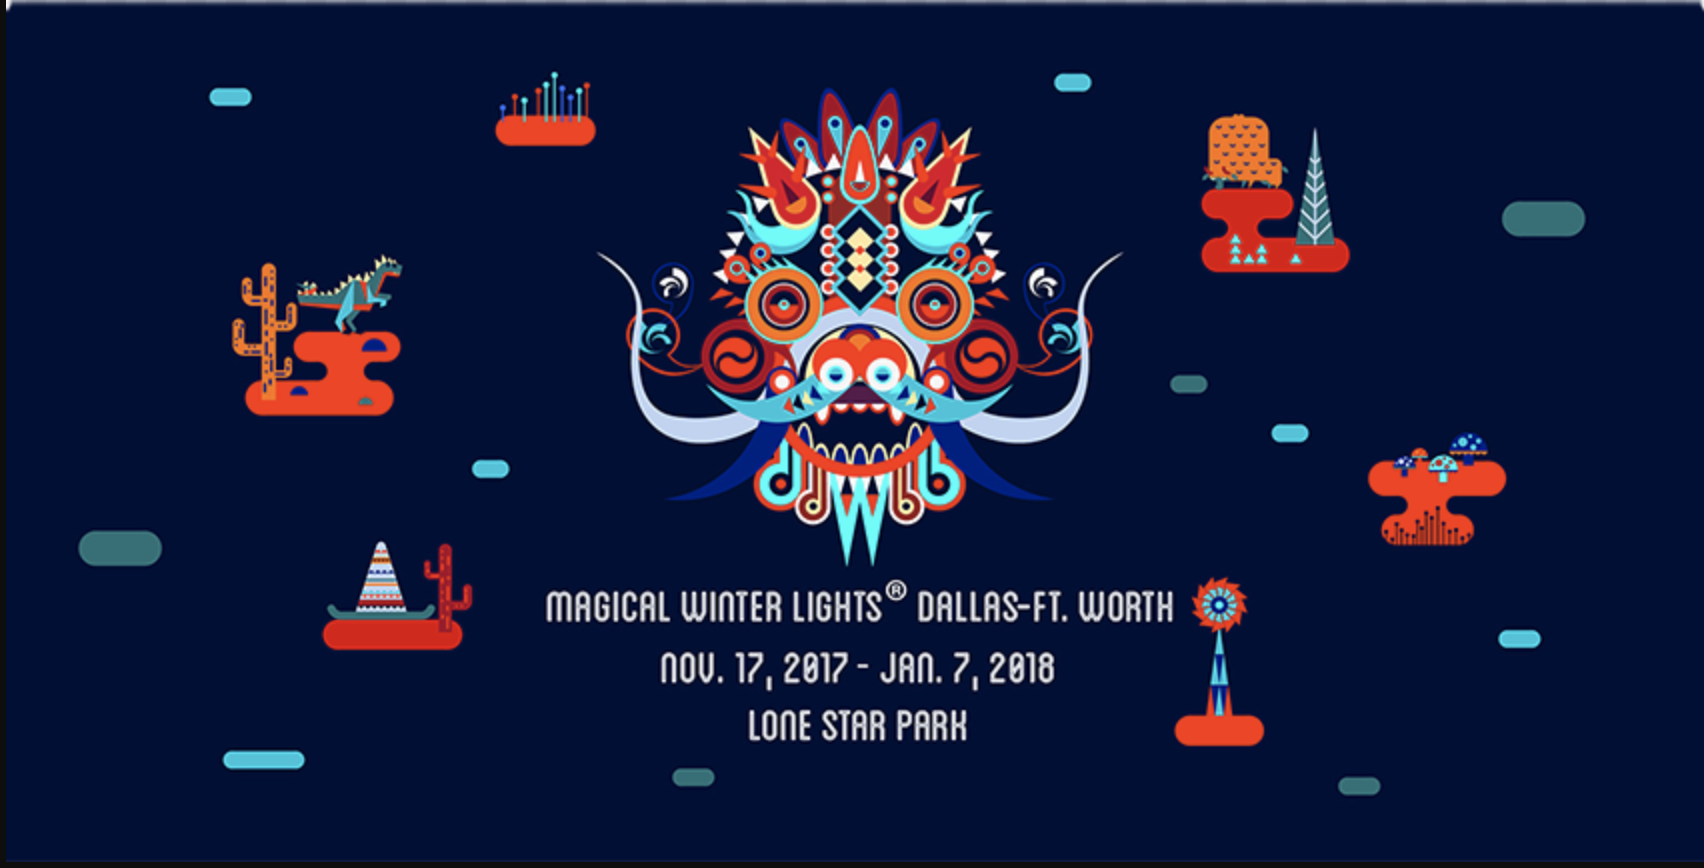 Tickets for Magical Winter Lights® 2017 - Dallas-Fort Worth in Grand Prairie from ShowClix